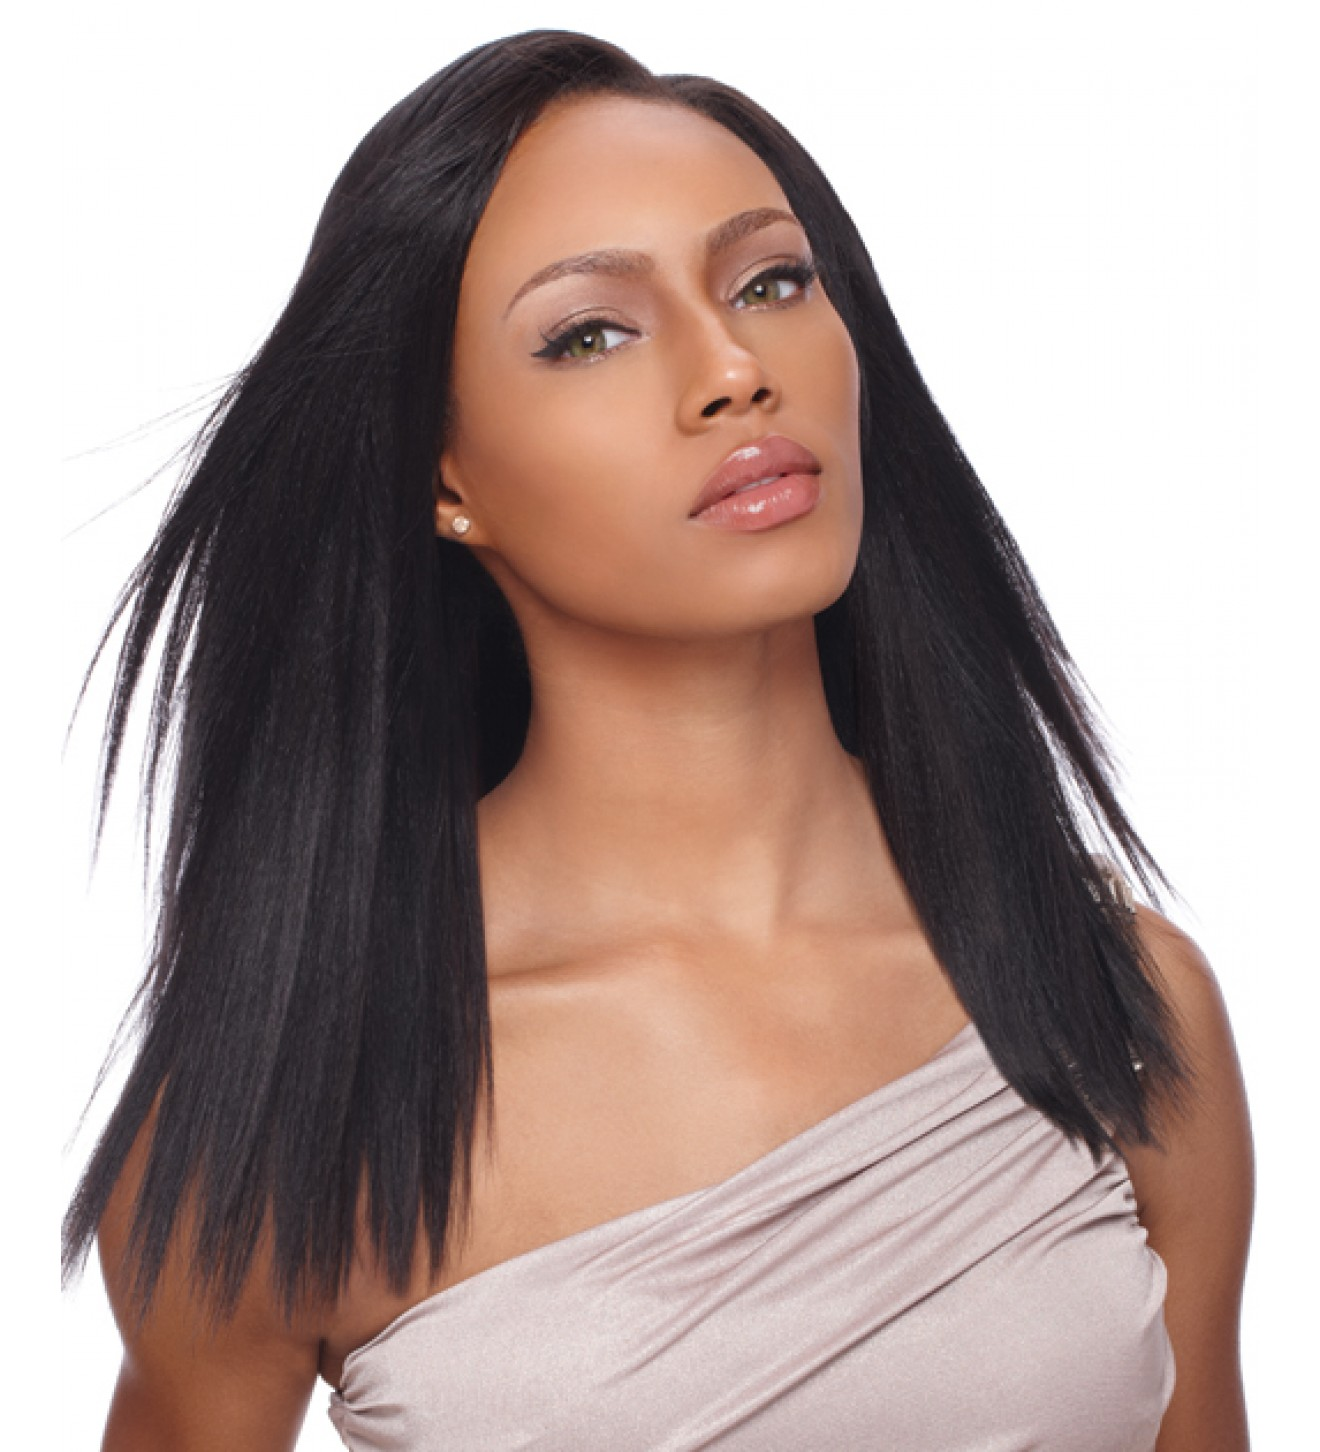 Rvh Premium Hair Extensions Same Length Straight